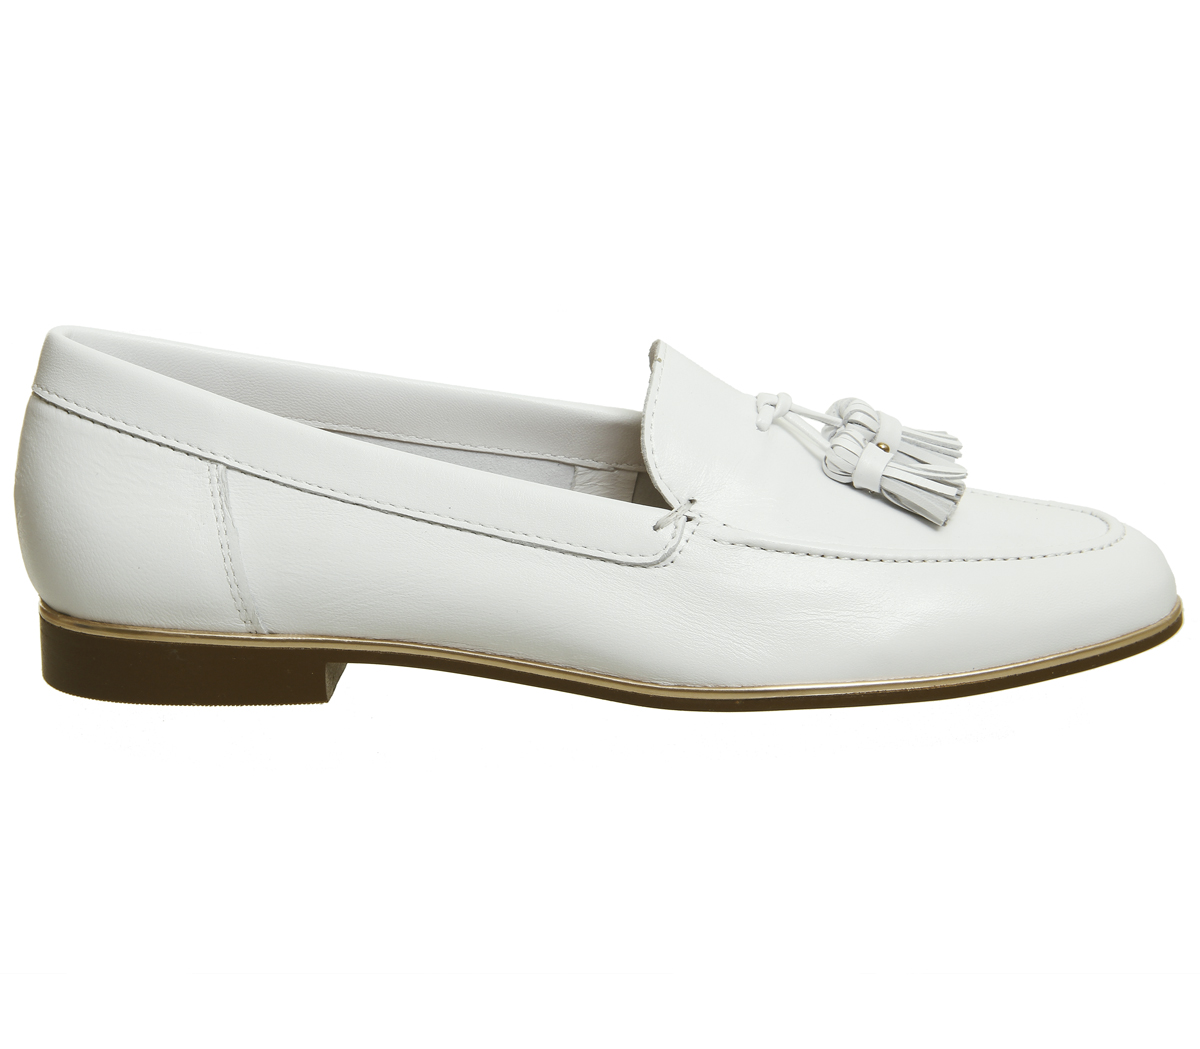 Womens Office Retro Tassel Loafers RAND WHITE WITH ROSE GOLD RAND Loafers Flats 53d829